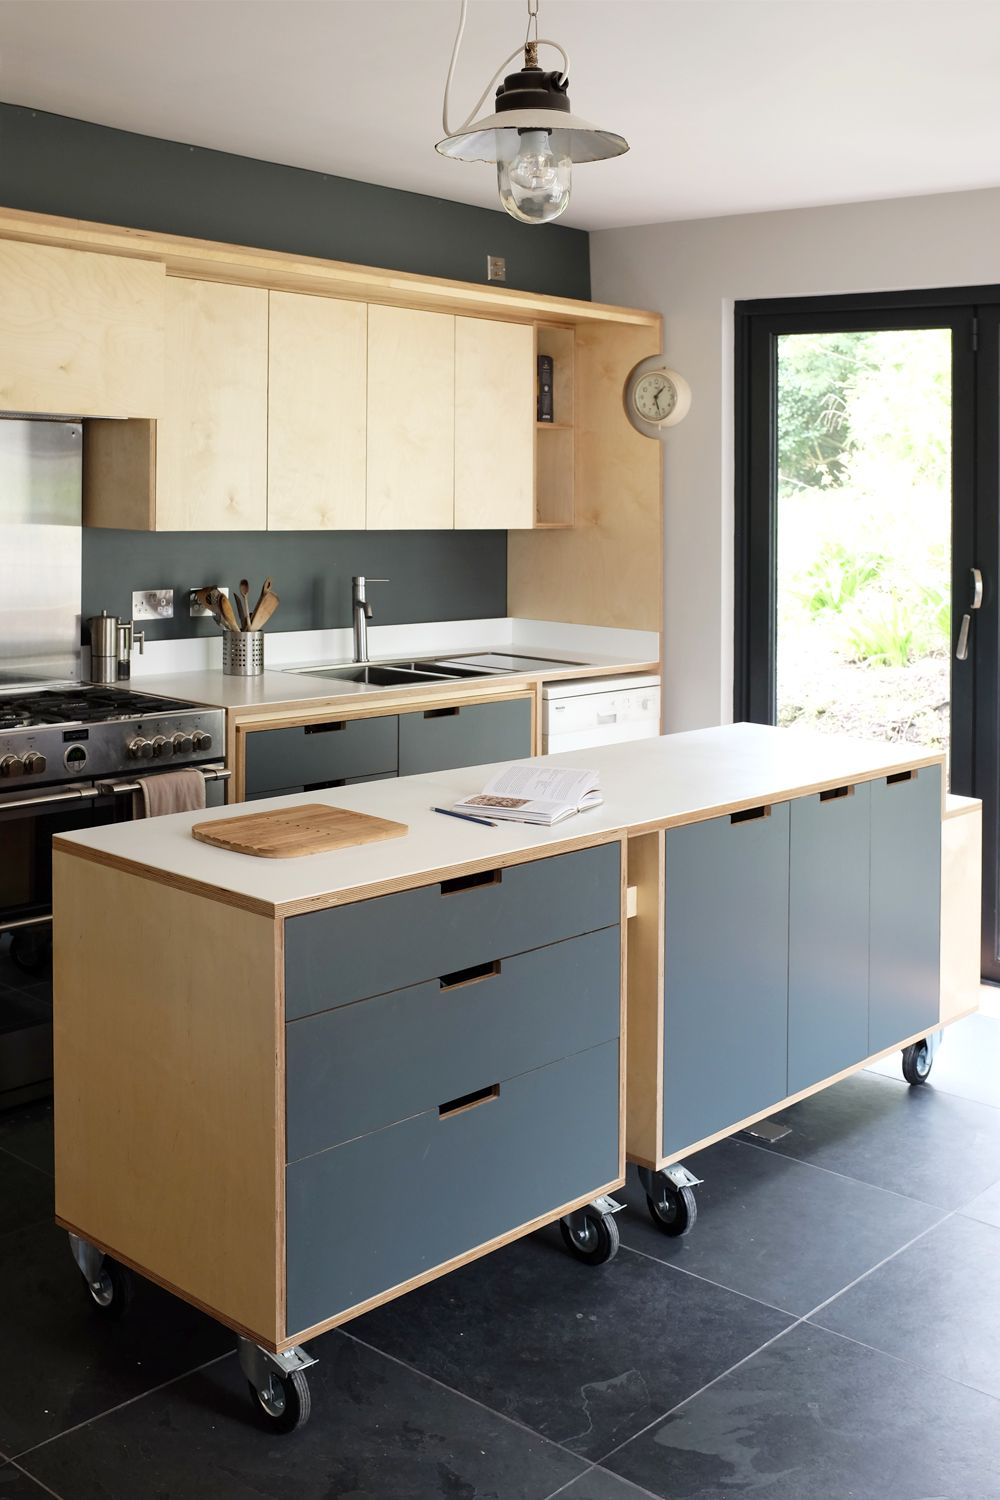 Merveilleux A Designer Plywood Kitchen For A Client In Penryn. Features A Multi  Functional Island Unit